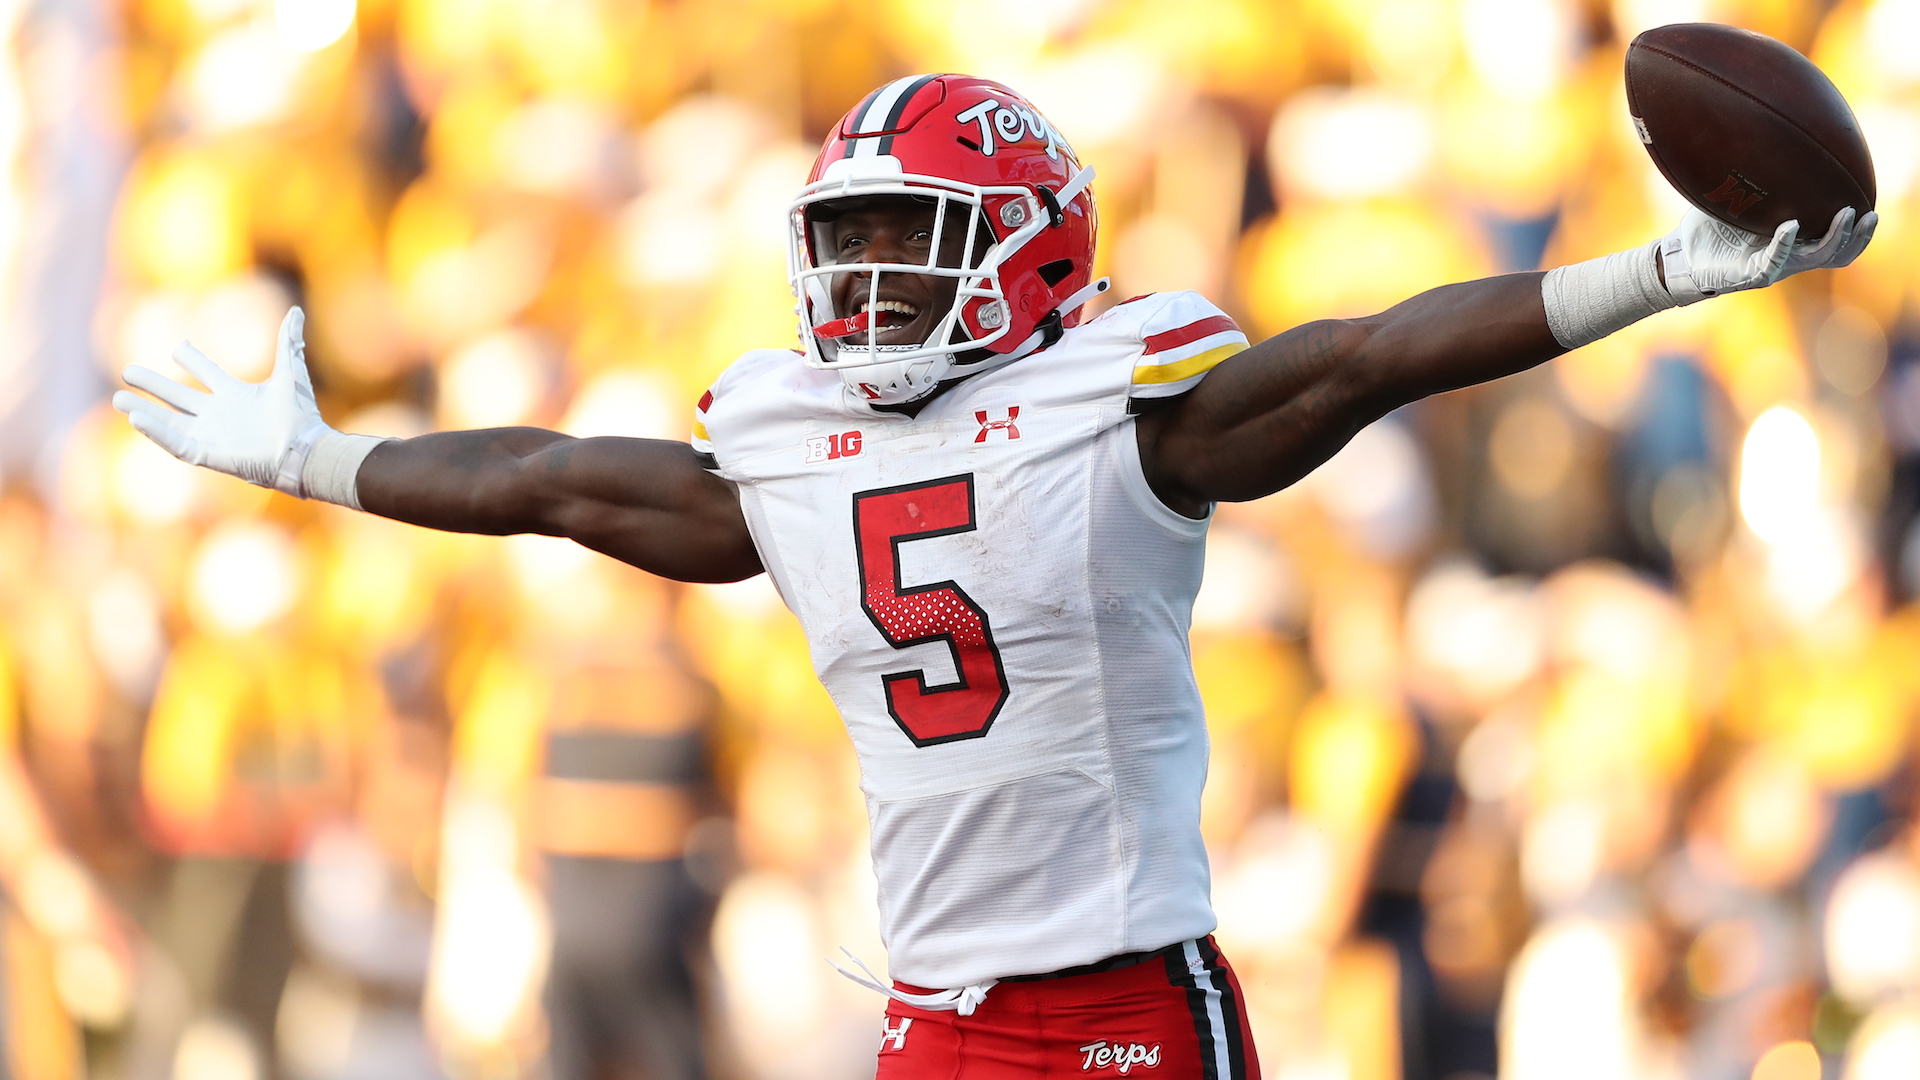 Friday Night College Football Preview and Picks